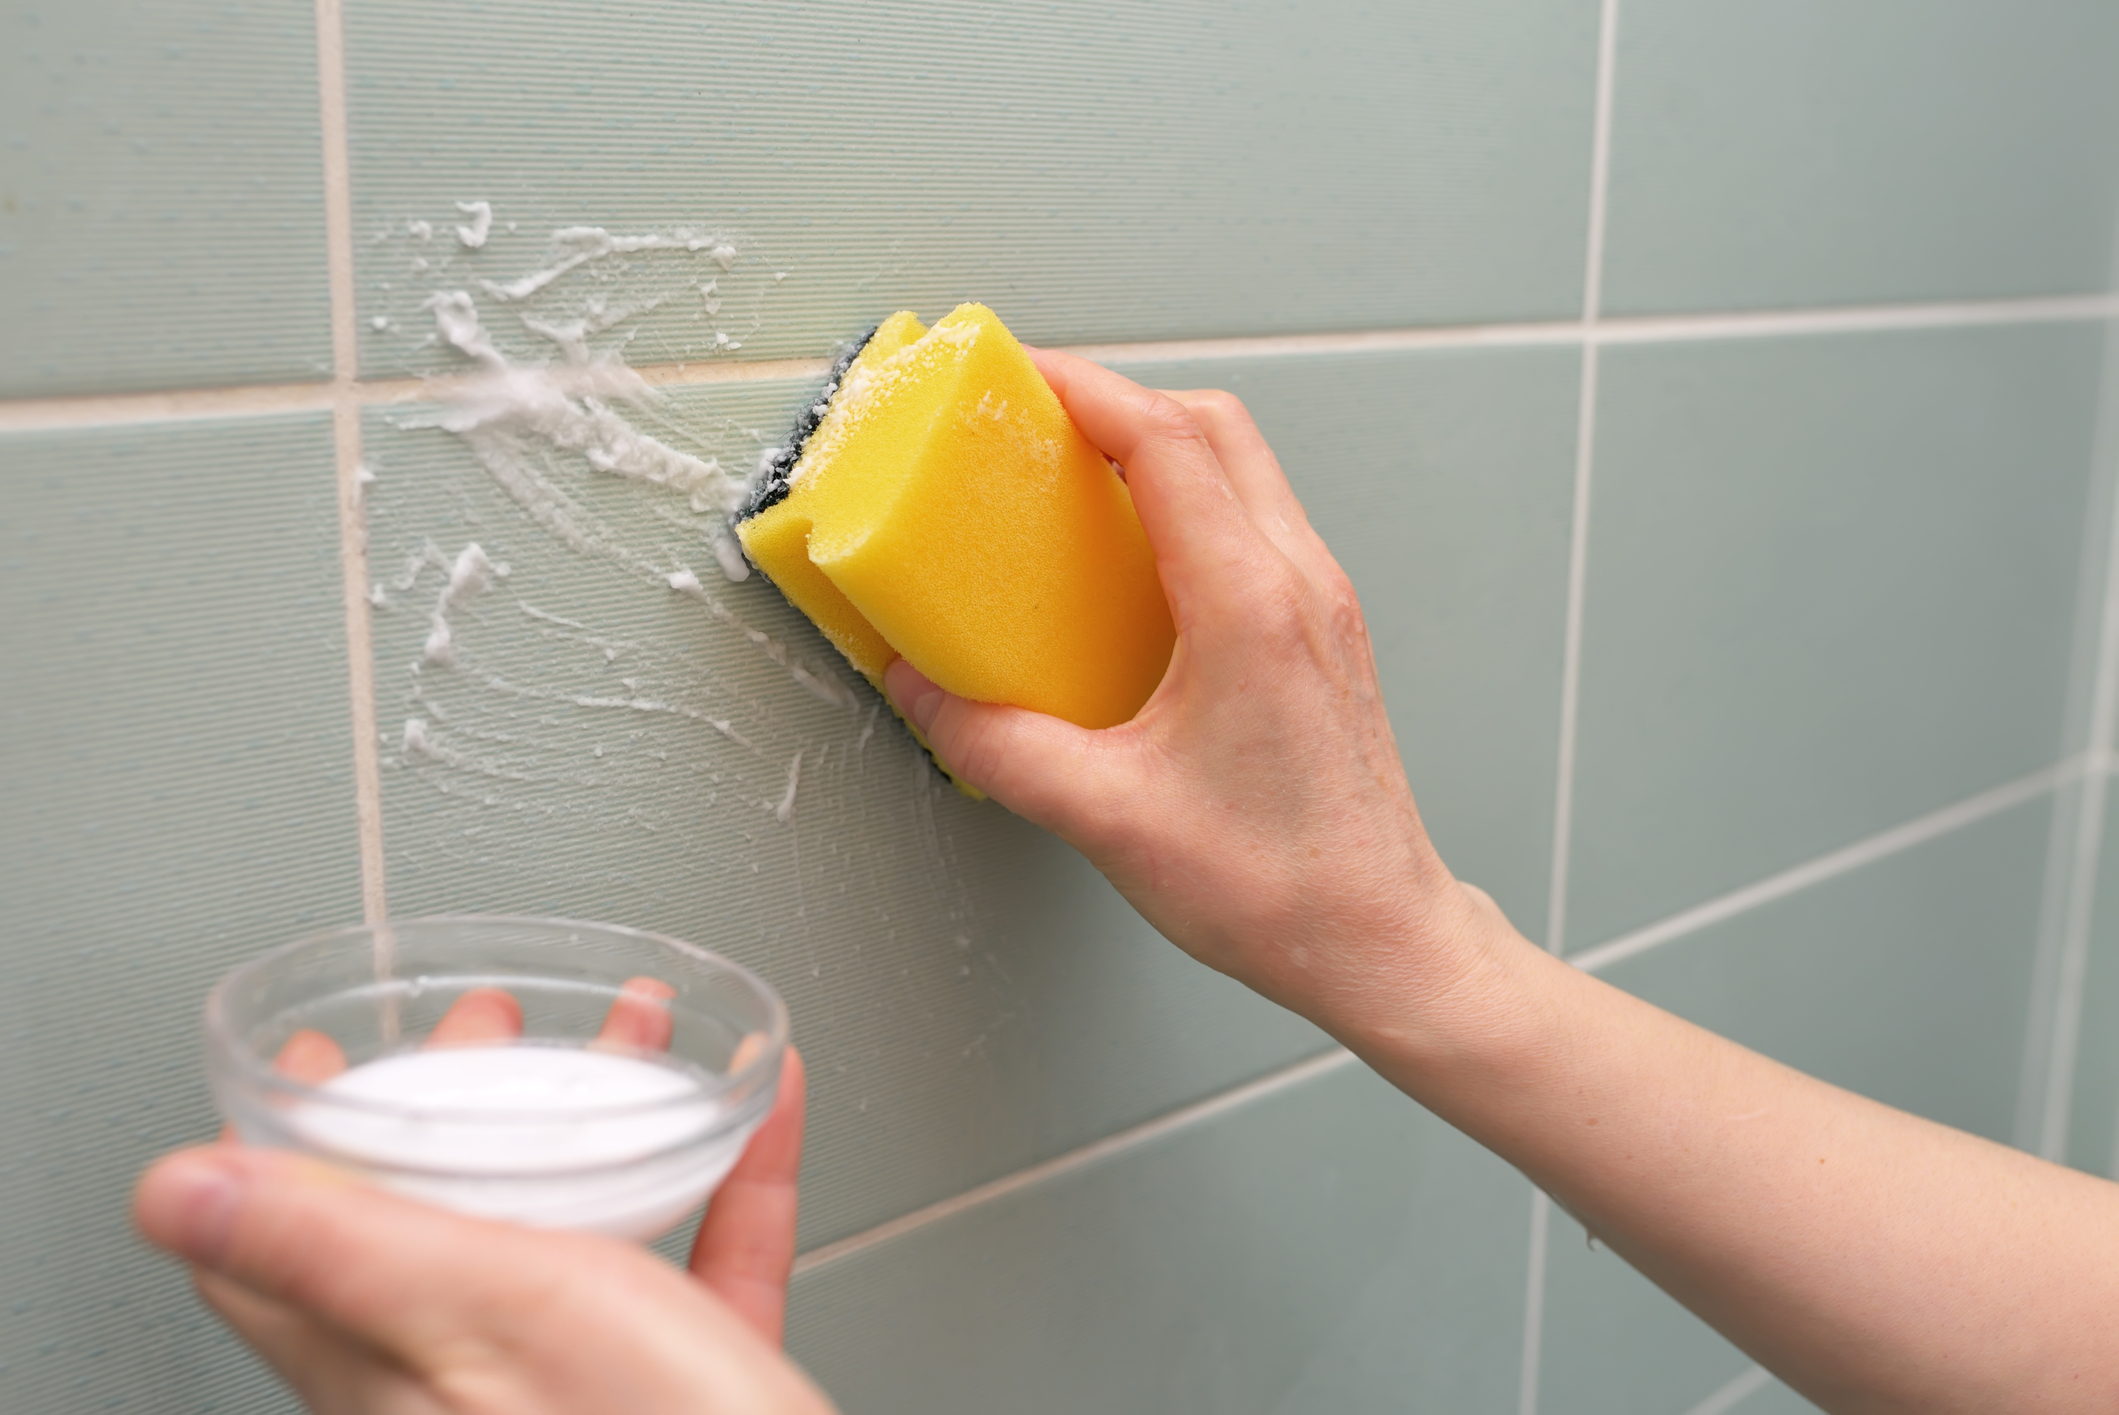 Some Genuine Cleaning Hacks Everyone Should Know Brilliant Life Hacks